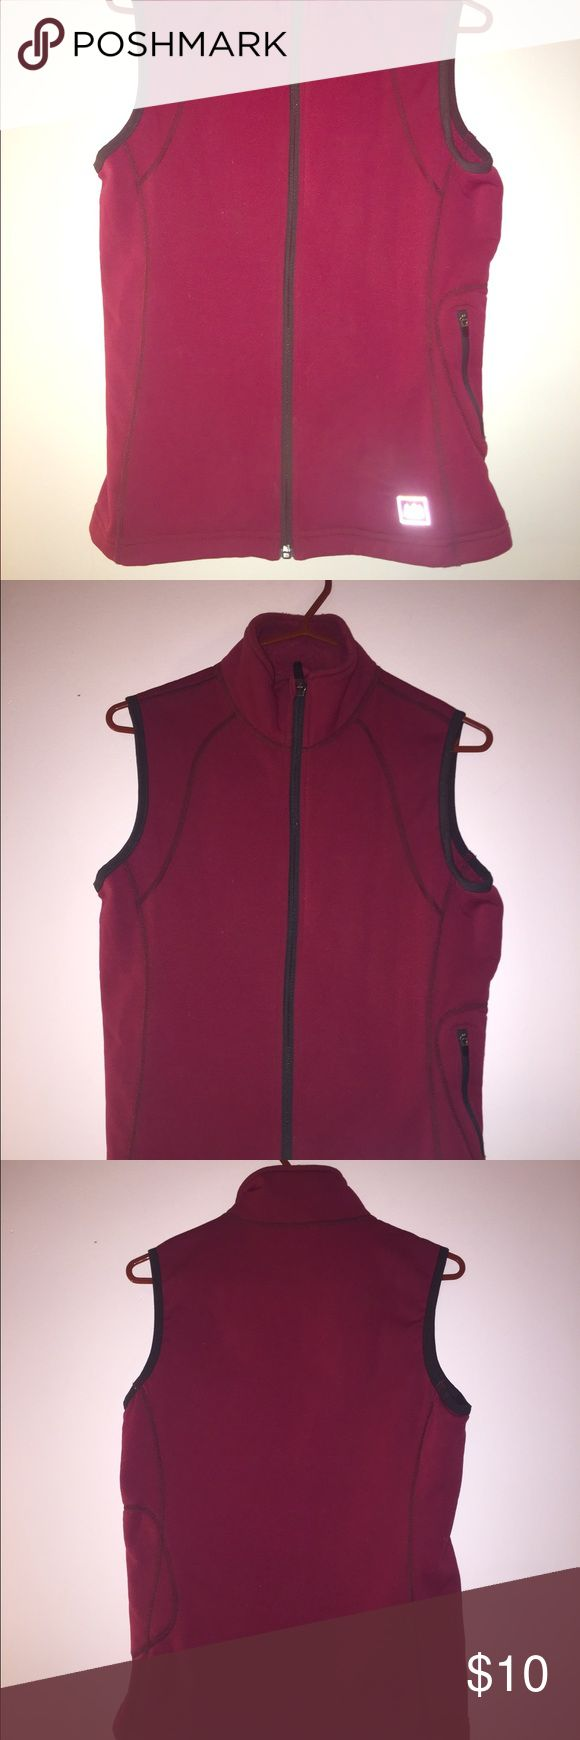 Women's red polyester zip up vest REI women's red polyester layering zip-up vest with side pocket. REI Jackets & Coats Vests